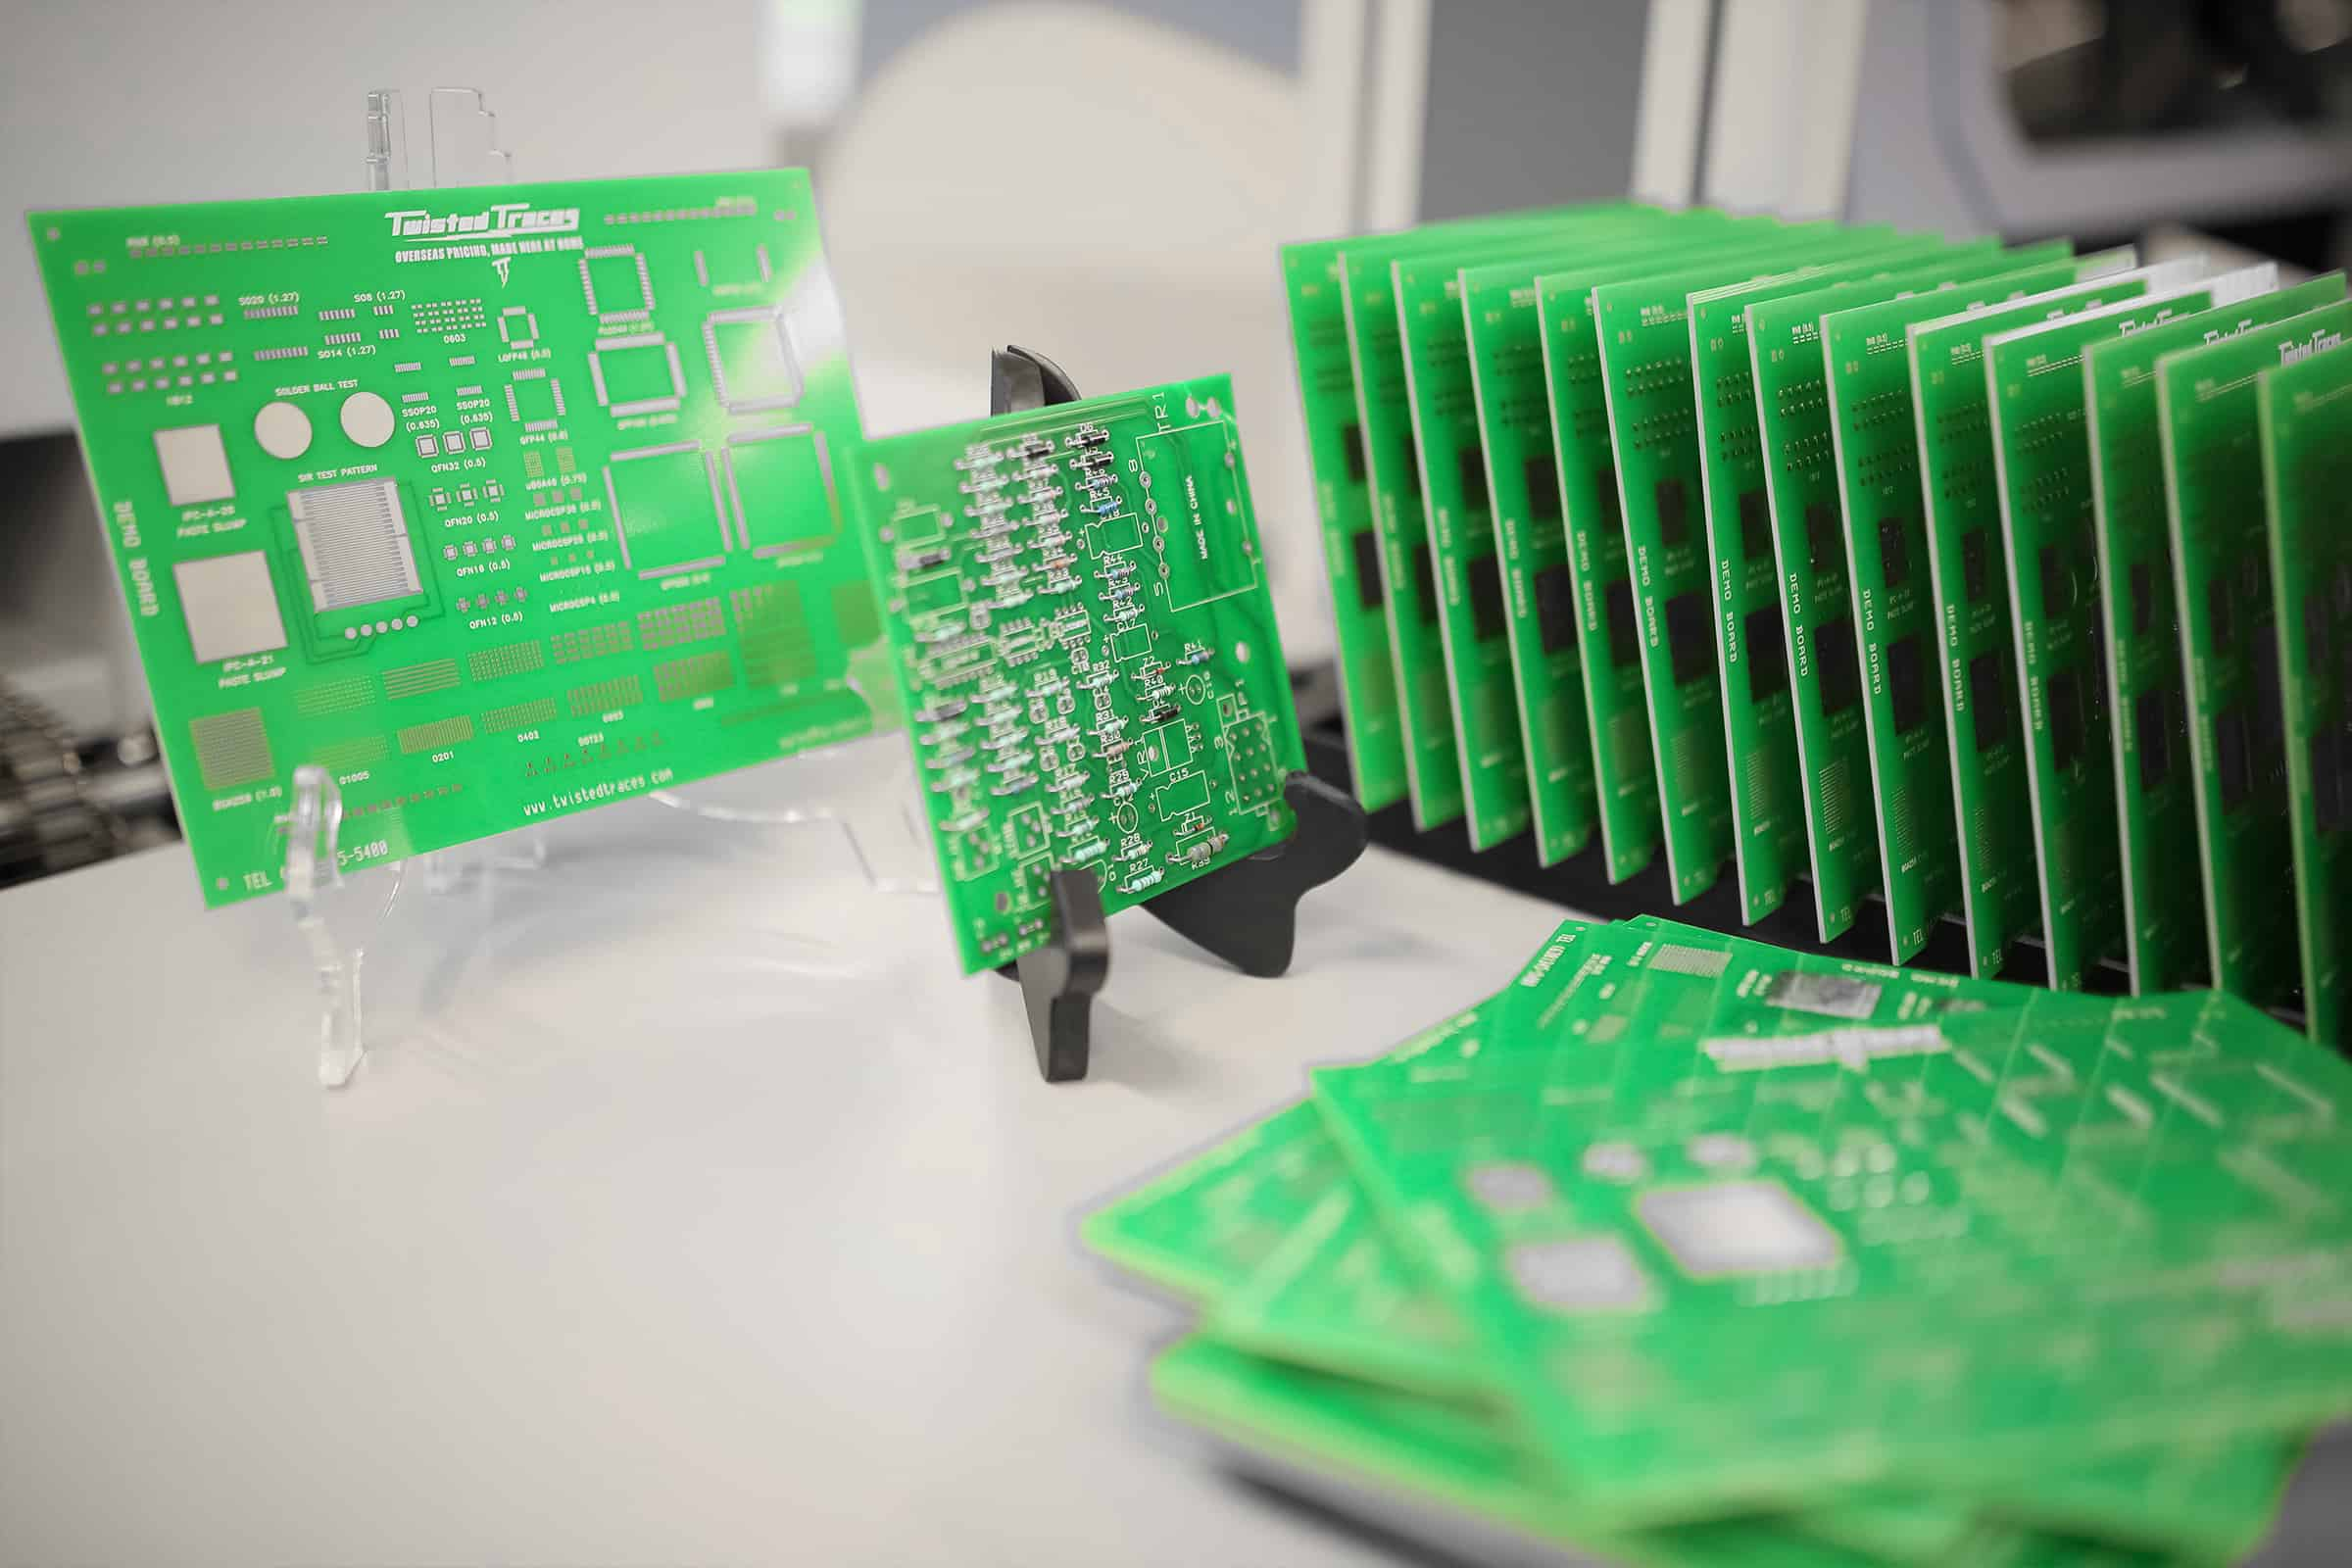 circuit boards pictured to demonstrate an example of hardtech product development